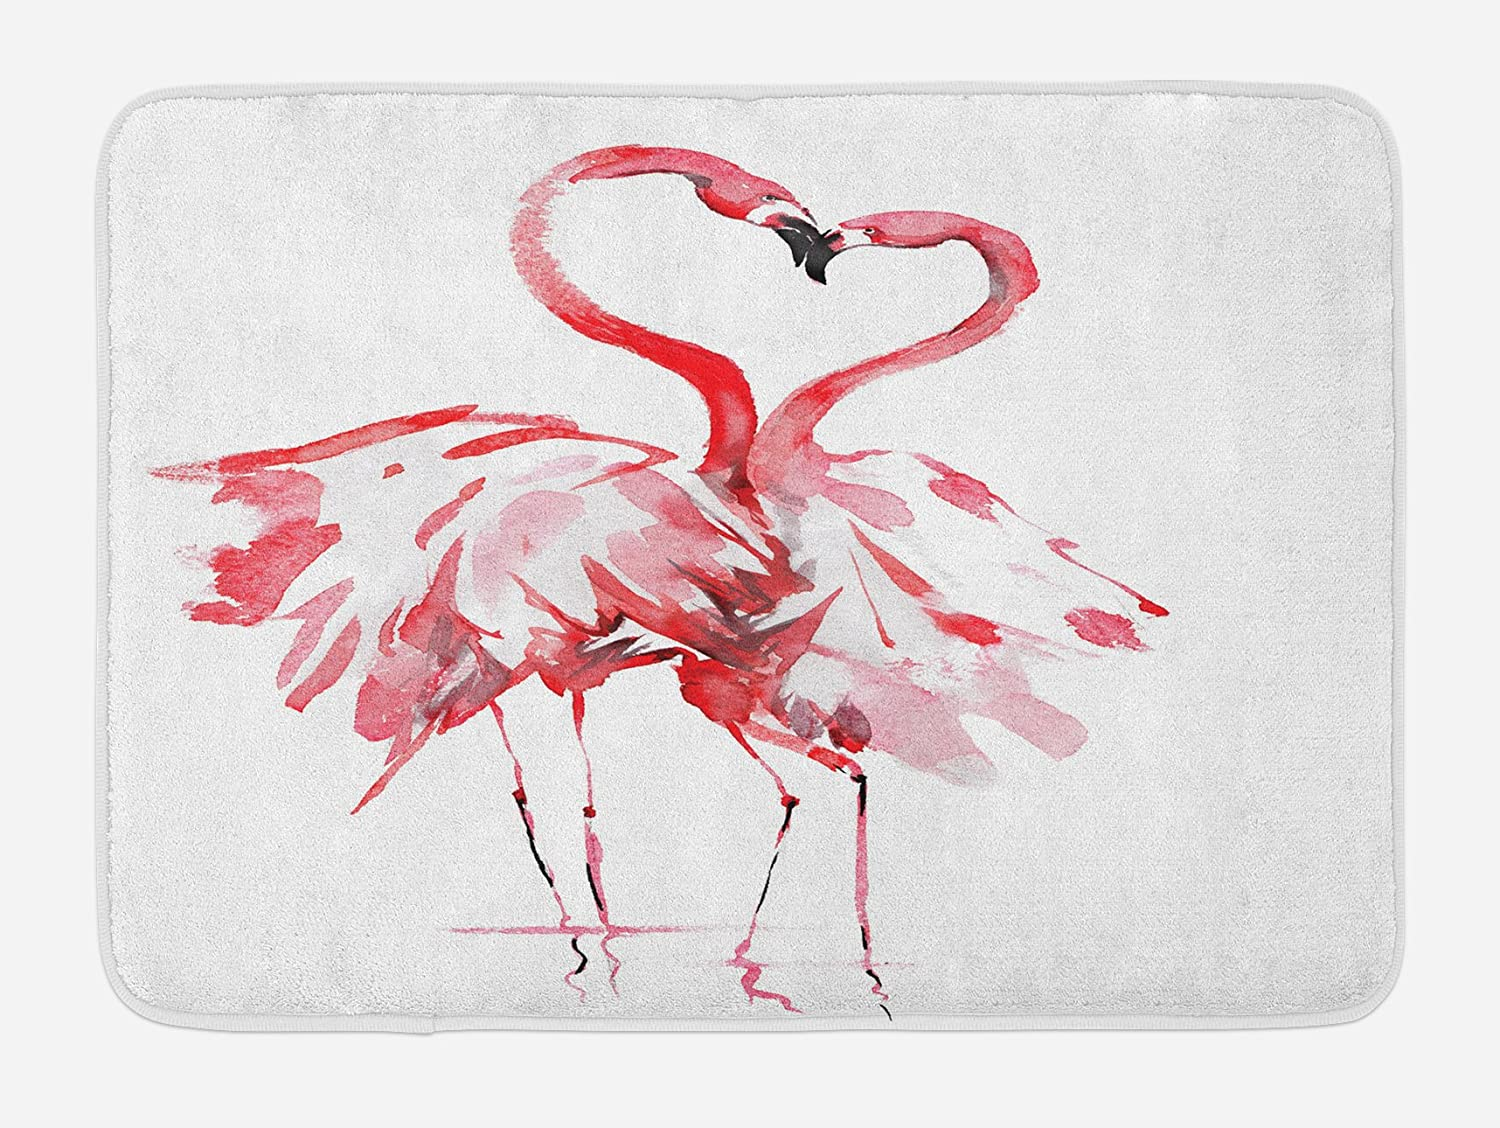 Ambesonne Flamingo Bath Mat, Flamingo Couple Kissing Romance Passion Partners in Love Watercolor Effect, Plush Bathroom Decor Mat with Non Slip Backing, 29.5